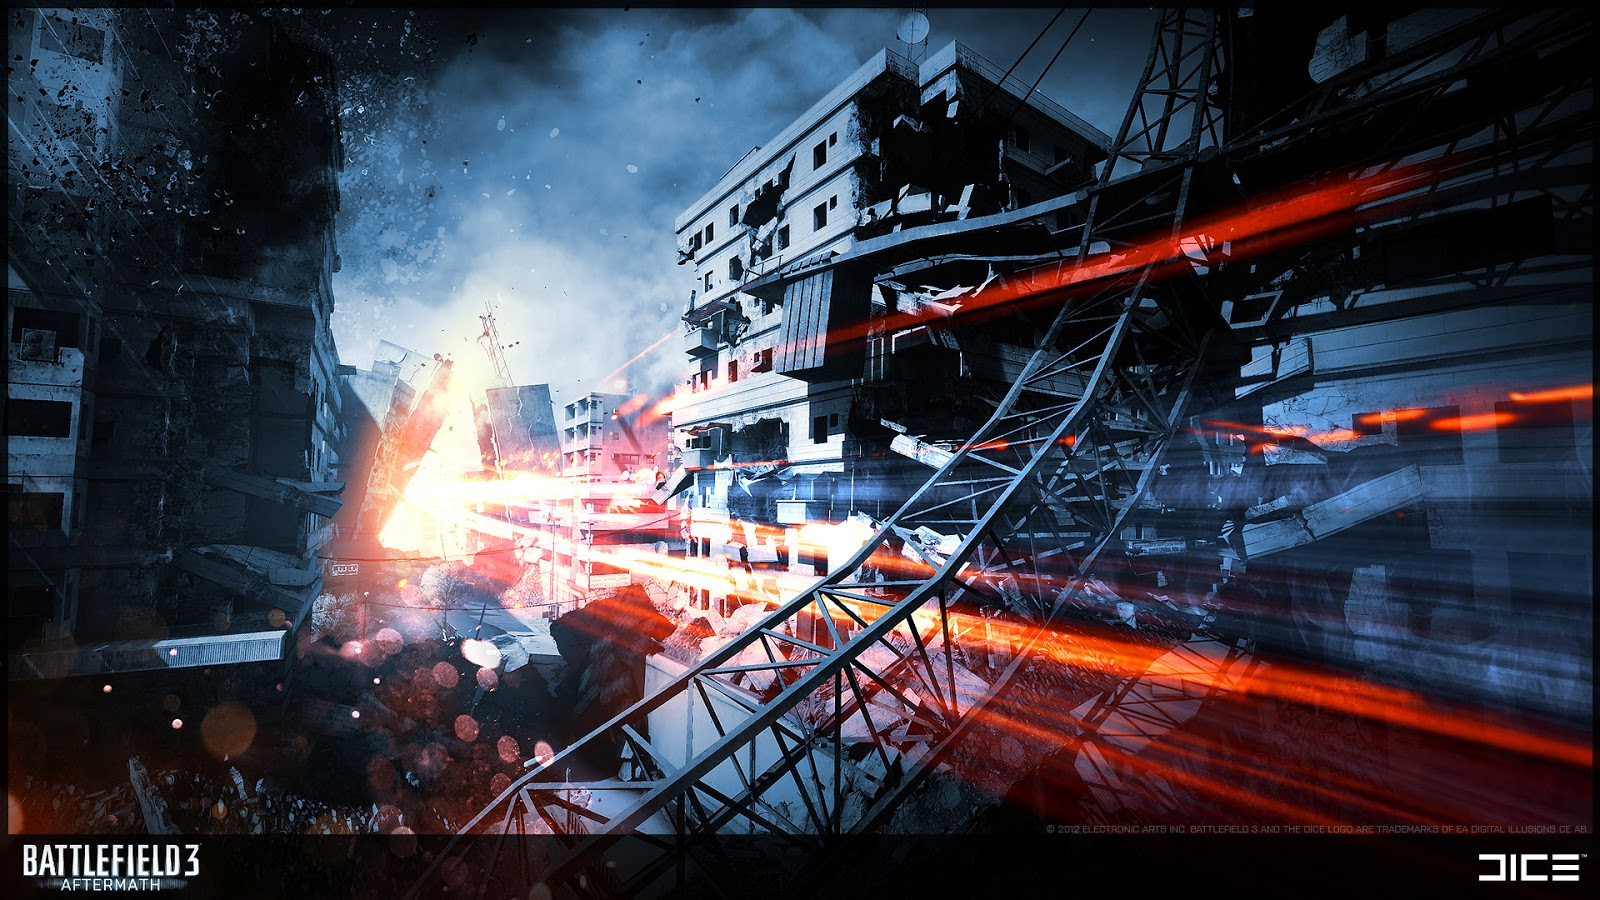 http://2.bp.blogspot.com/-pc62re6yILo/UOLS2z9lAnI/AAAAAAAAH1E/2NHt3hEG4xs/s1600/battlefield_3_aftermath_epicenter-HD.jpg